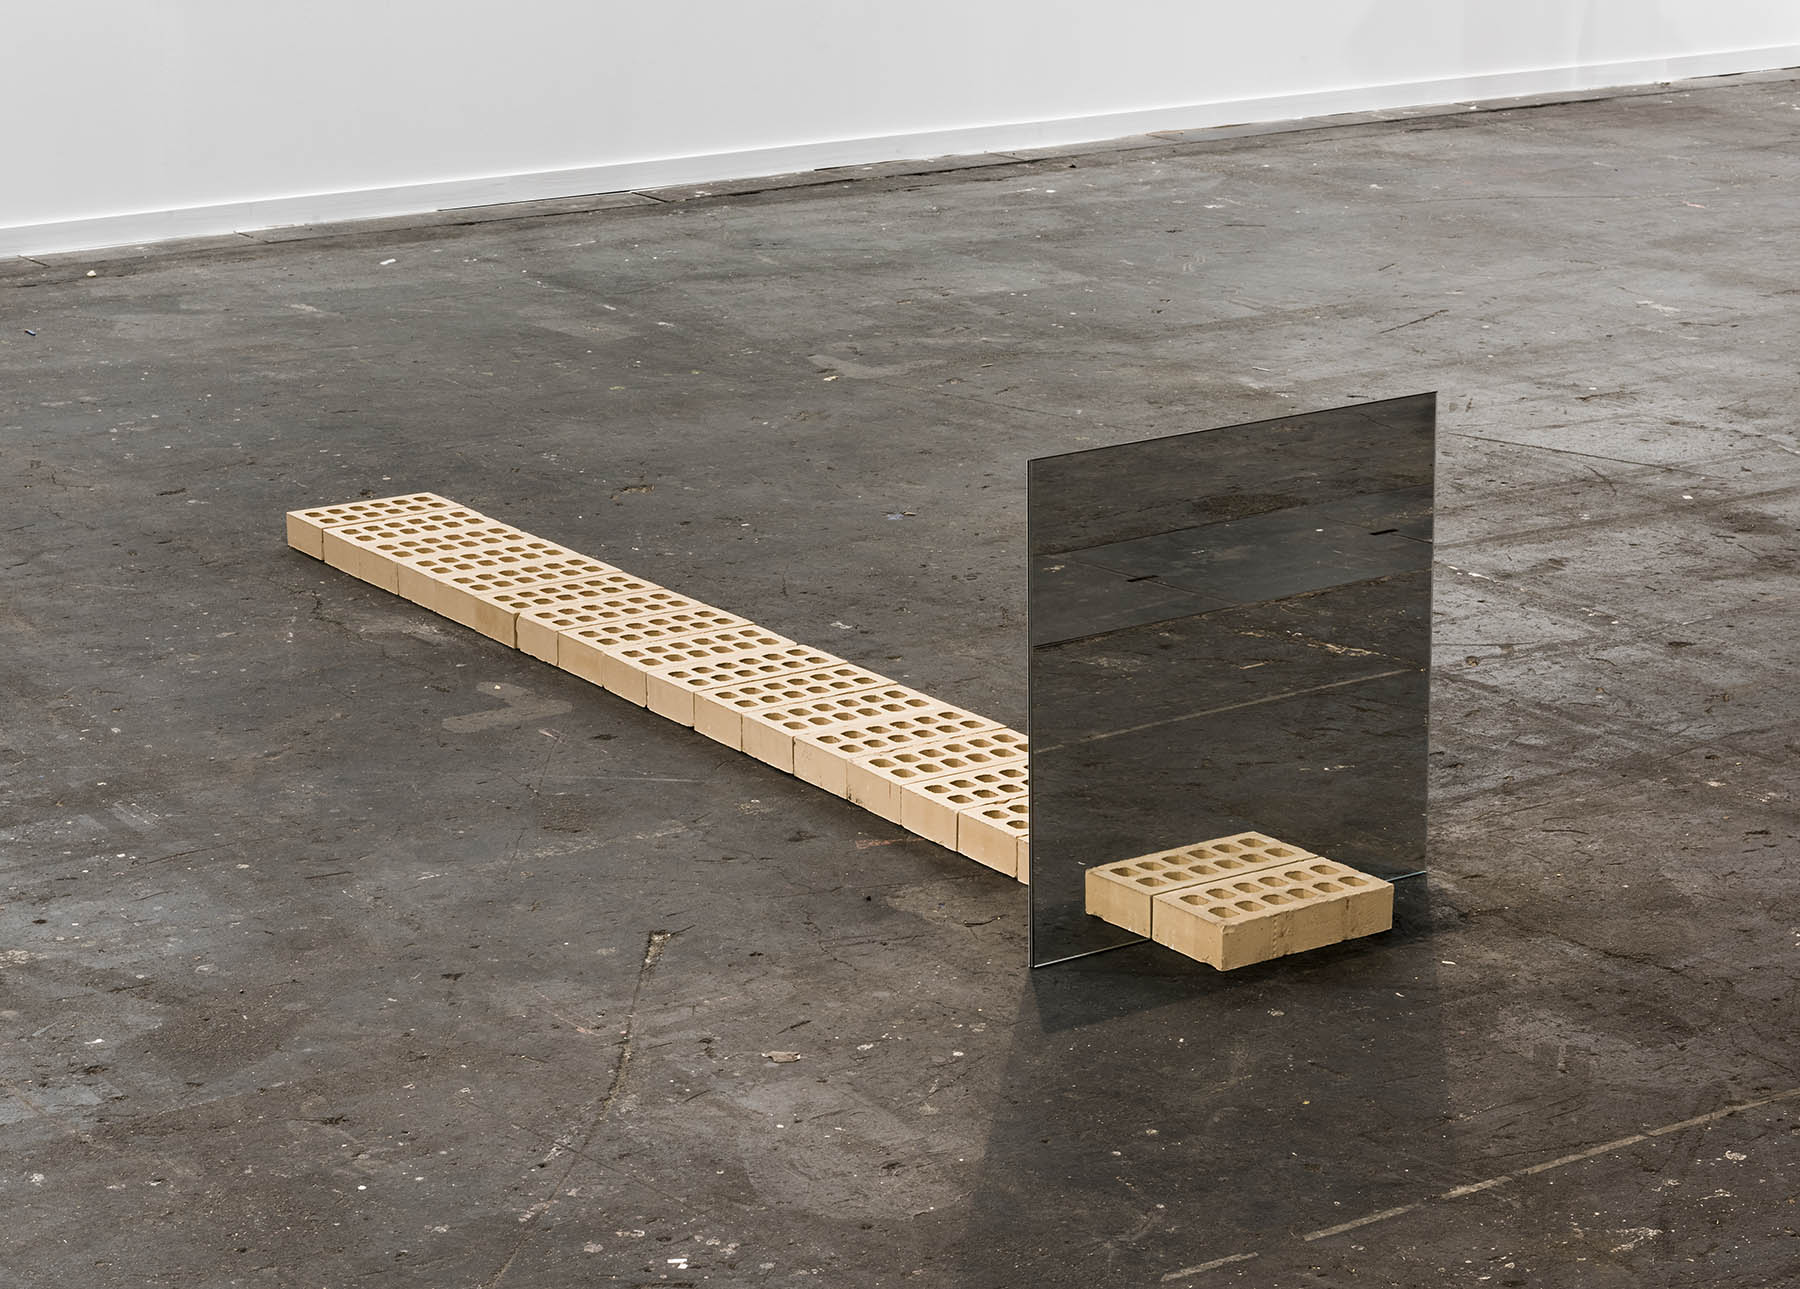 Ding Musa, Finito after Carl Andre, 2015